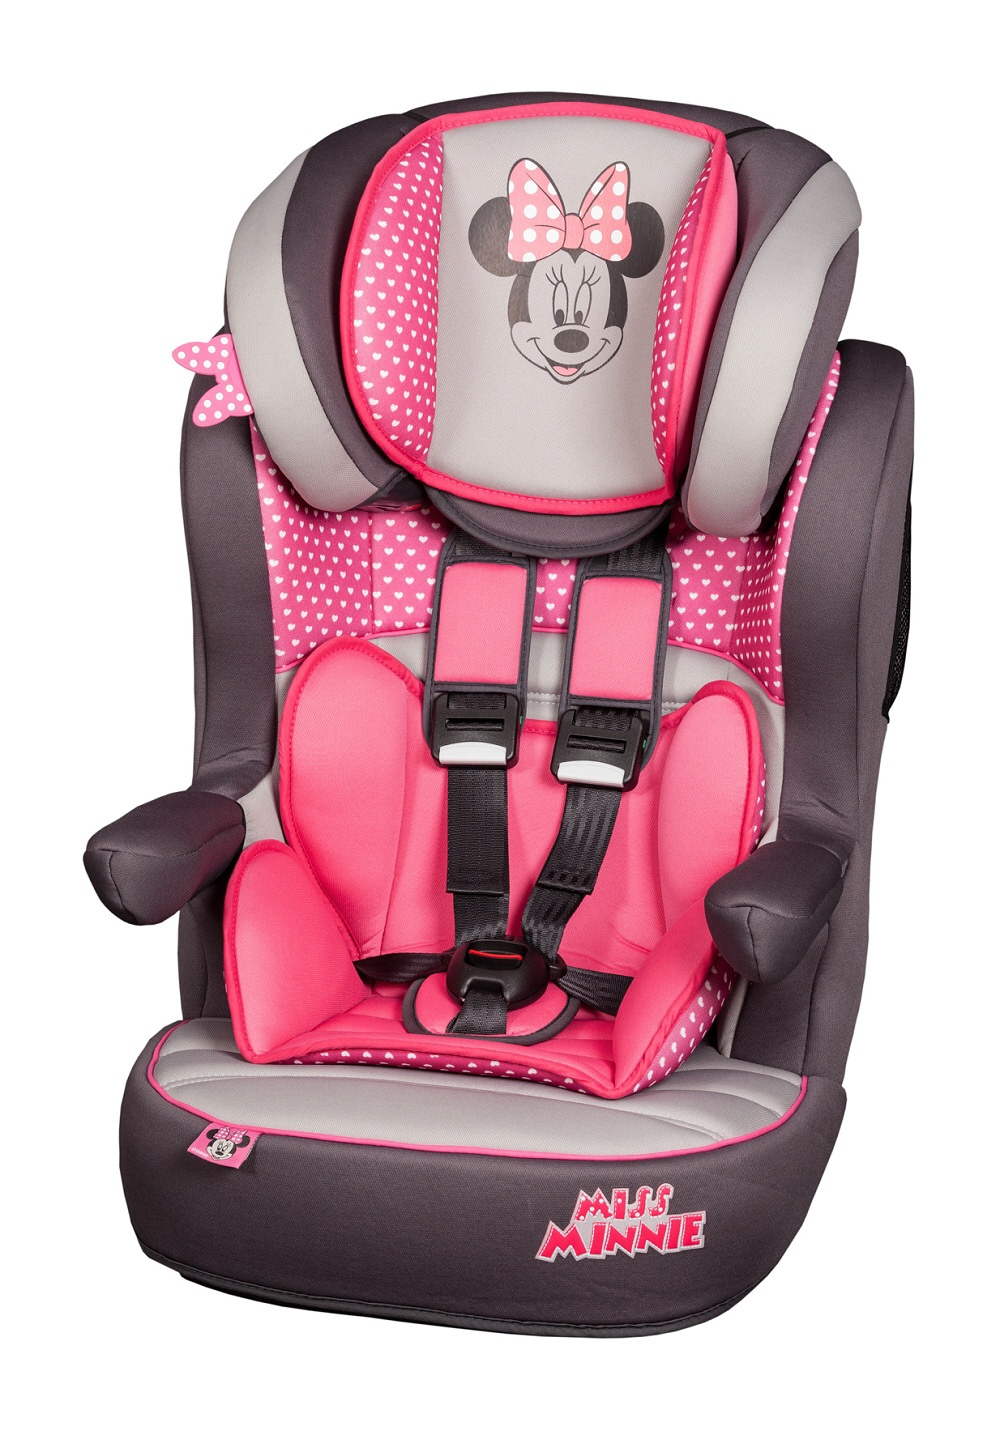 osann child car seat i max sp 2014 miss minnie buy at. Black Bedroom Furniture Sets. Home Design Ideas